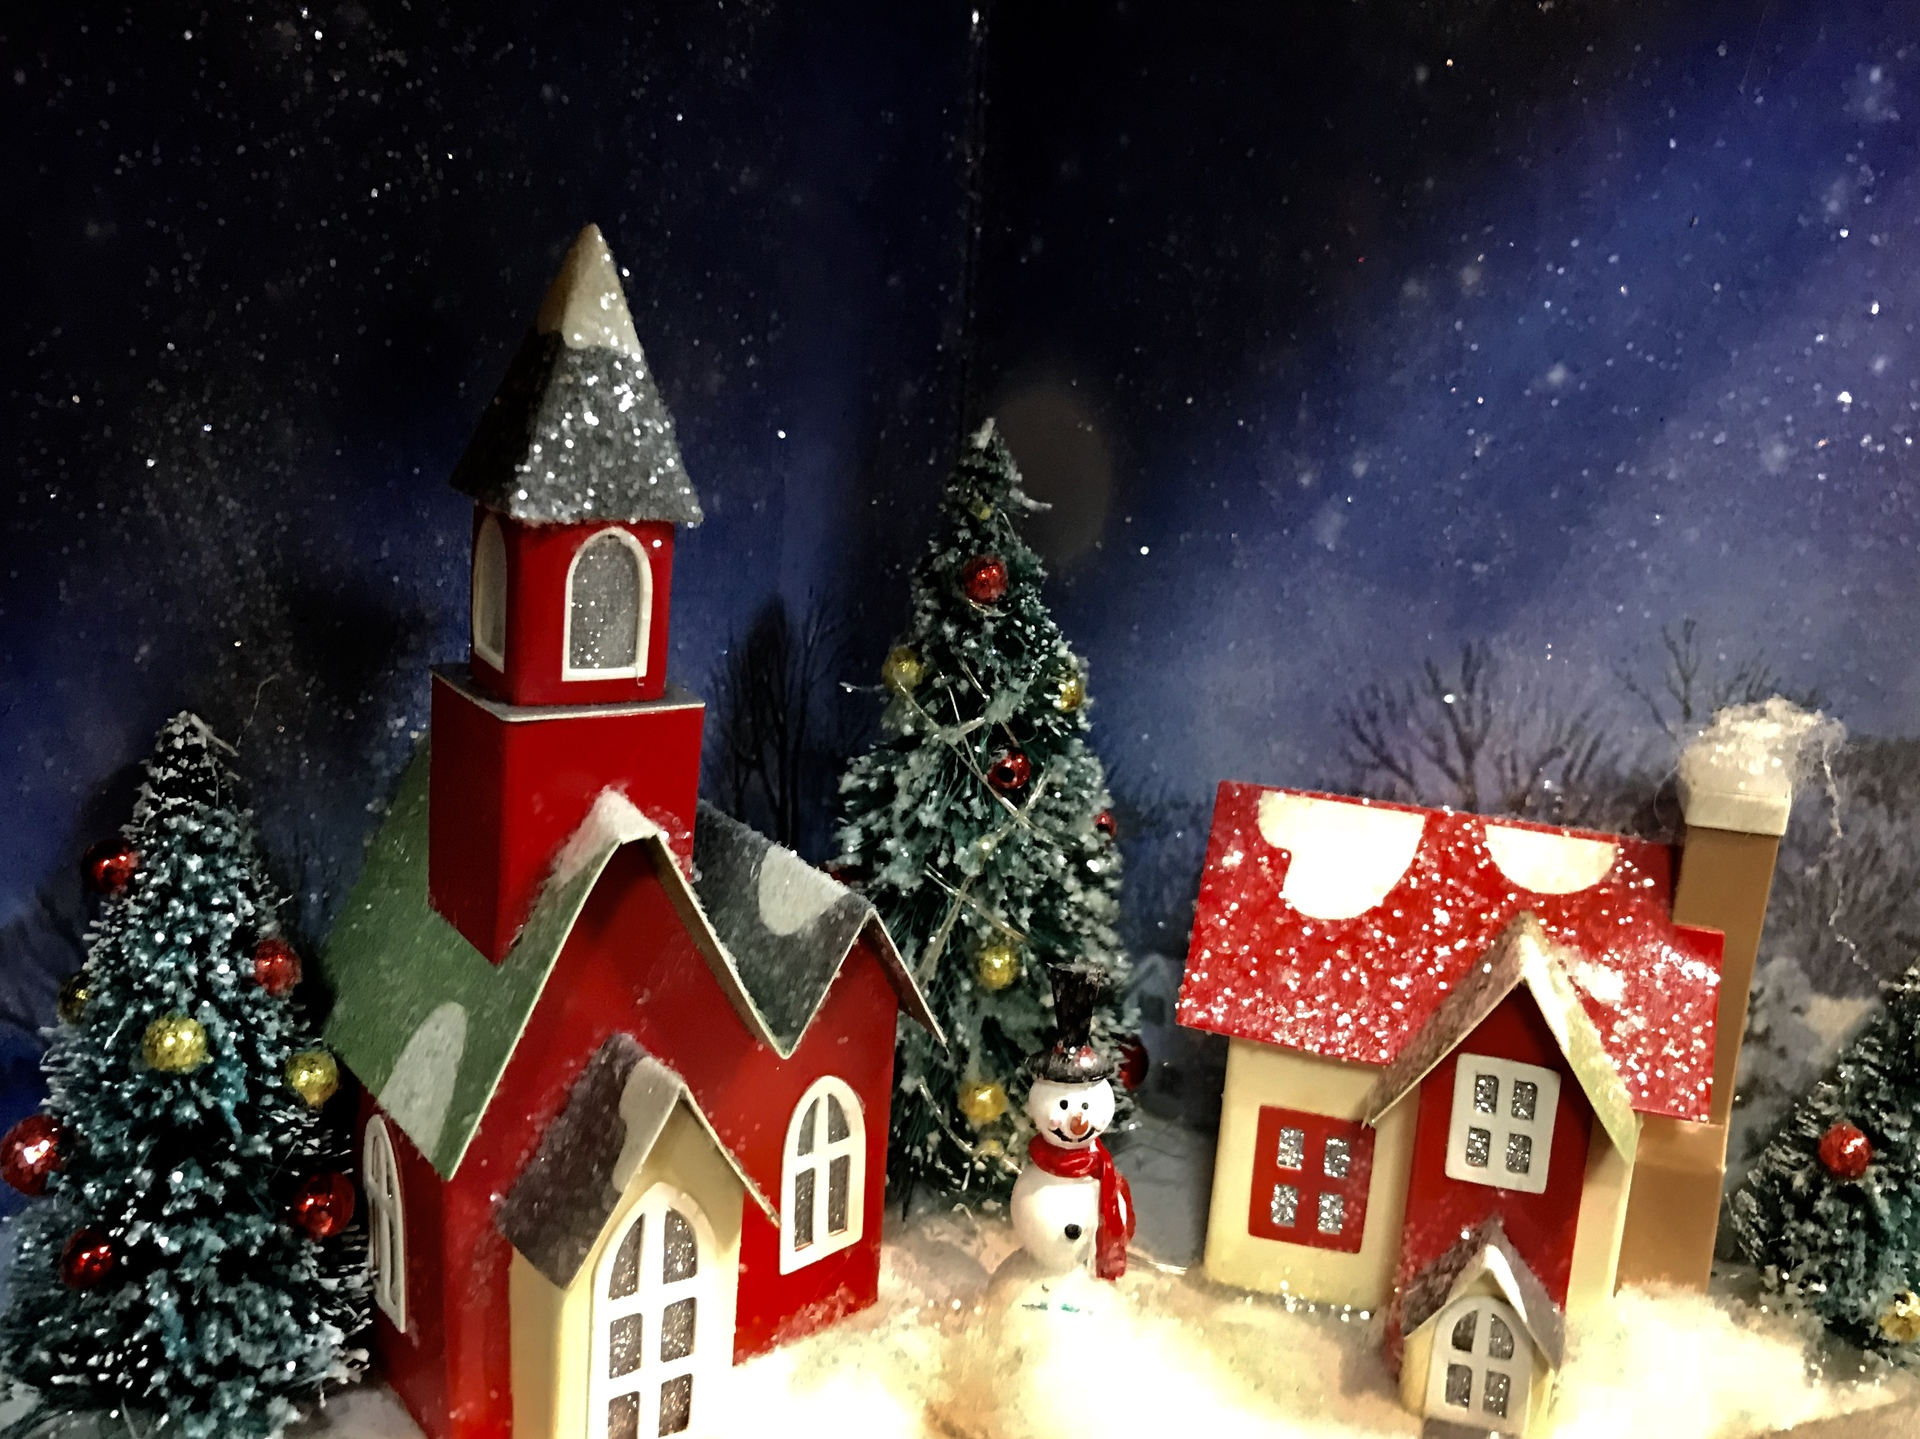 Christmas Village 2 | willowcatdesigns, winter, christmas tree, snow